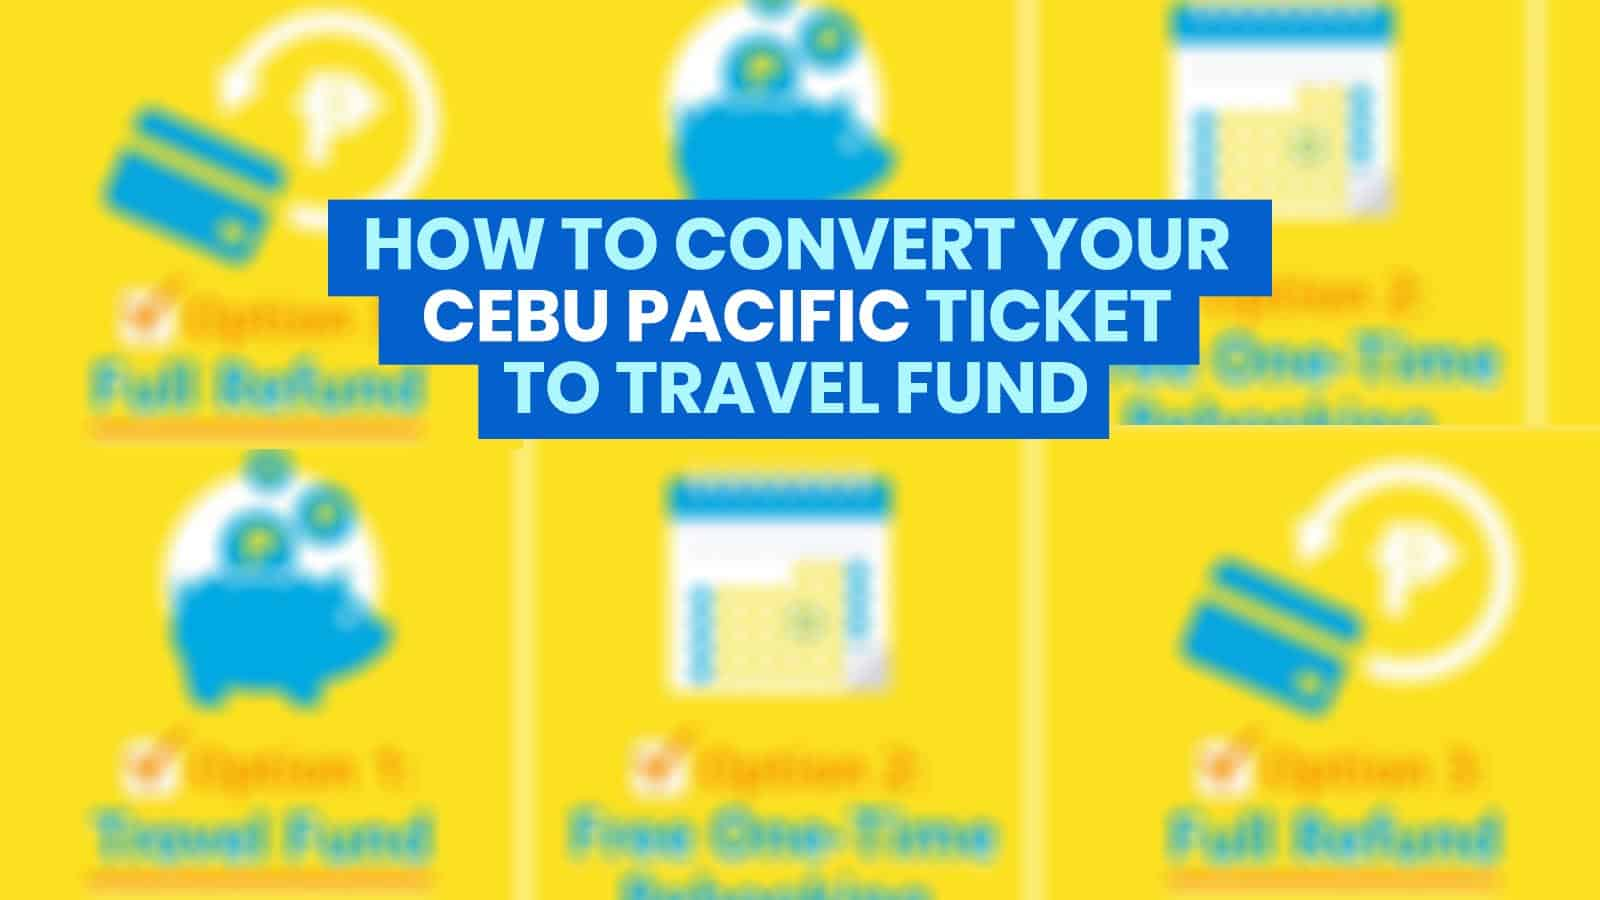 CEBU PACIFIC: How to Convert Your Ticket to a TRAVEL FUND